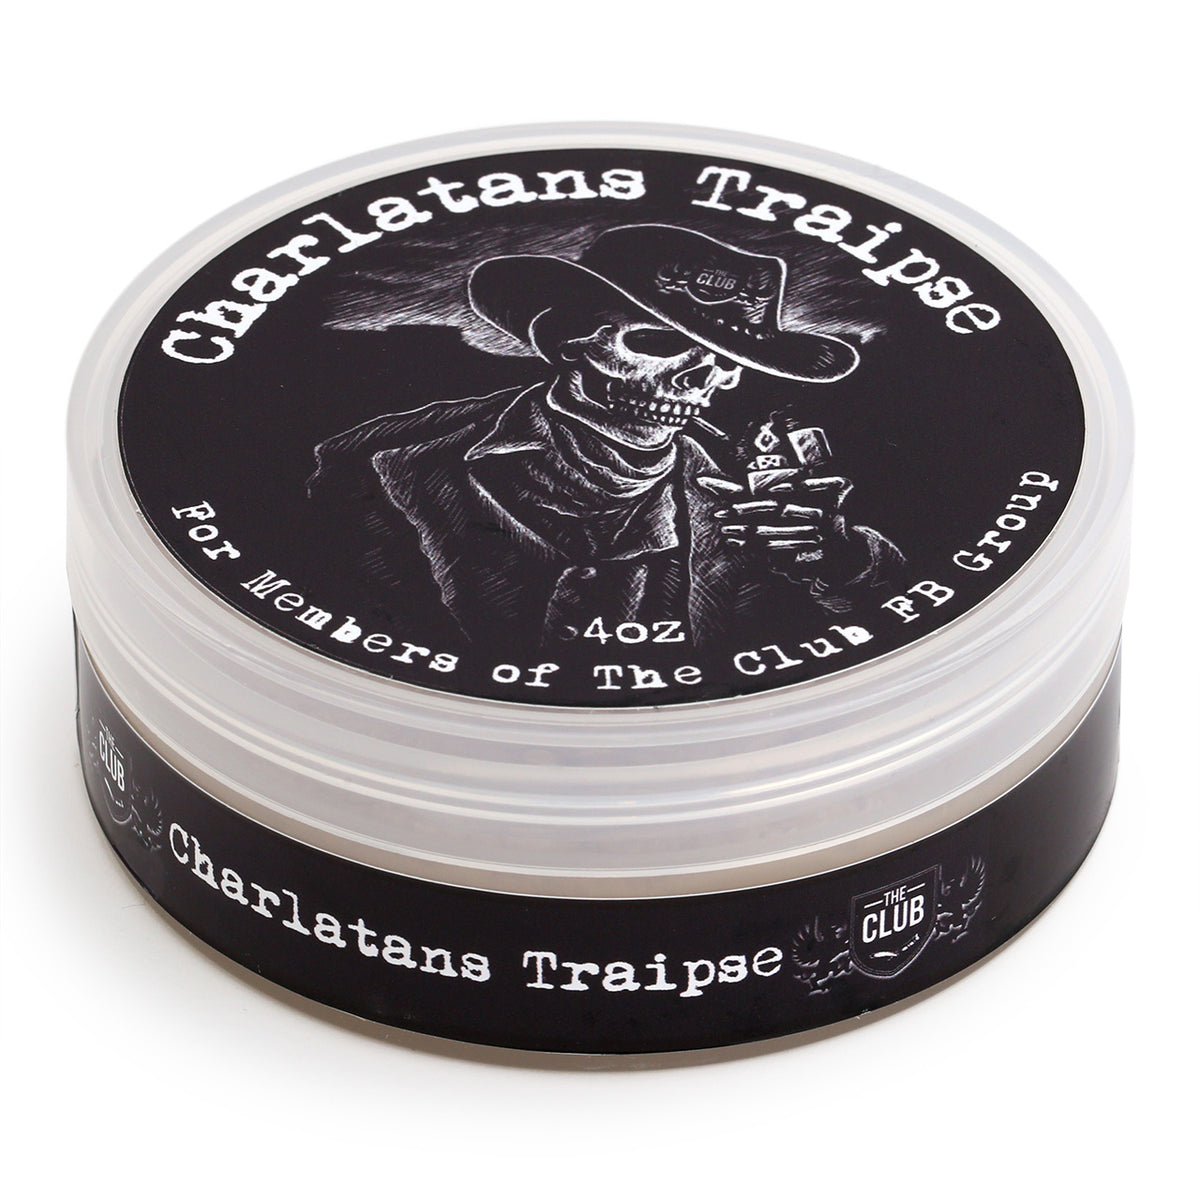 A & E Shave Soap - Charlatan's Traipse, 3/4 view